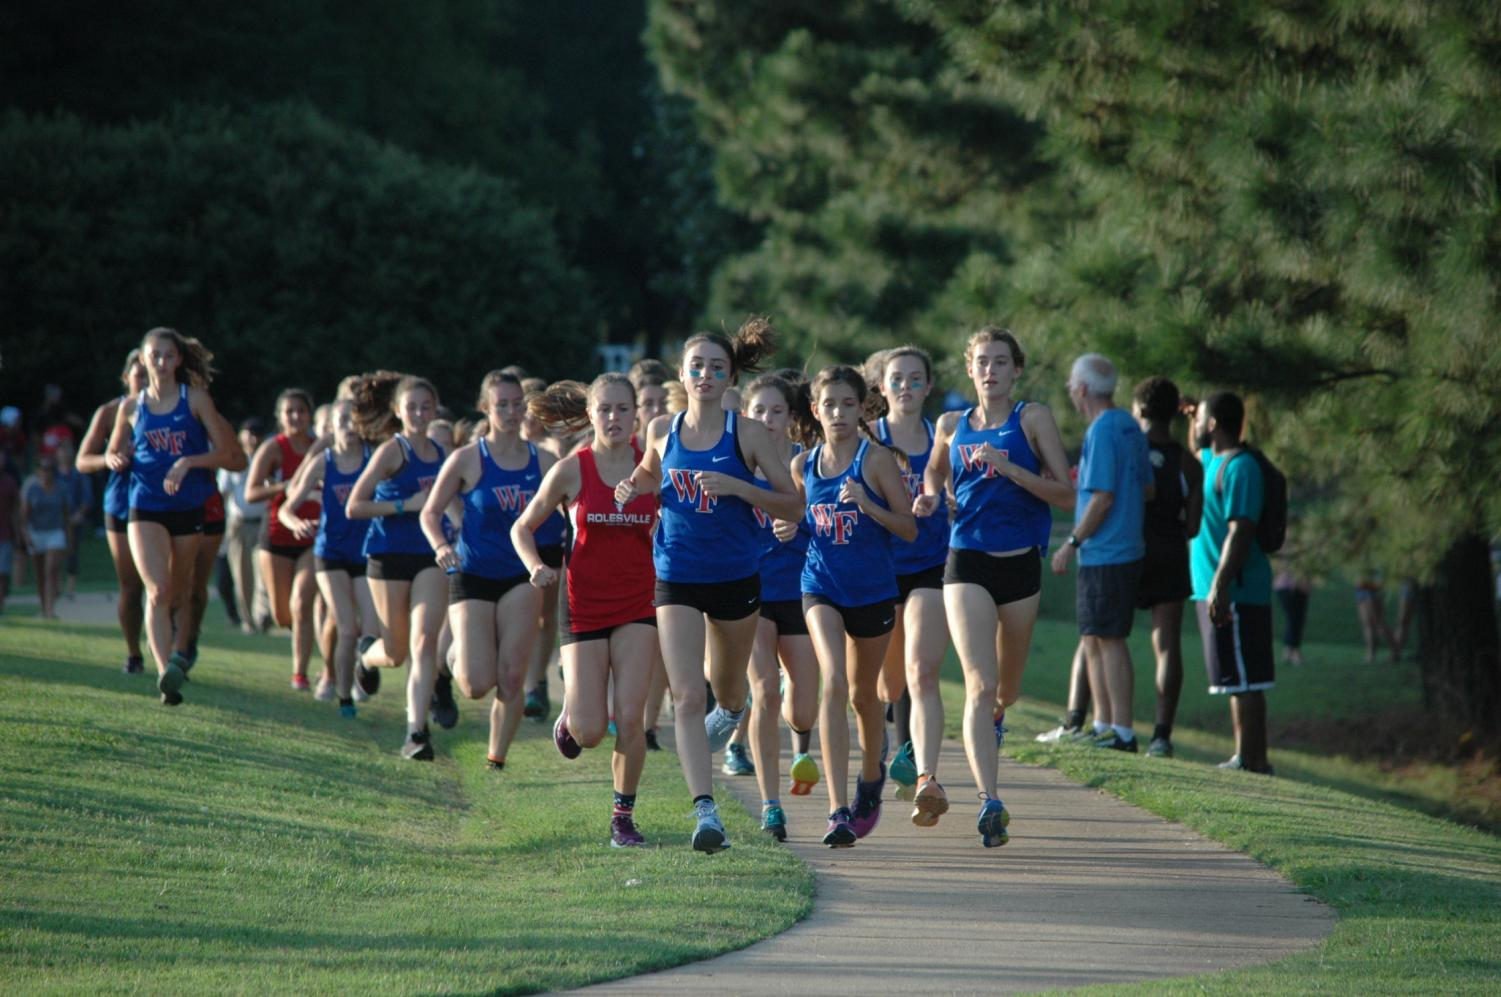 Senior Erin Spreen leads the pack on senior night in the fall cross country sports season. Later that spring track season, Spreen would set the school record in the 1600m run.